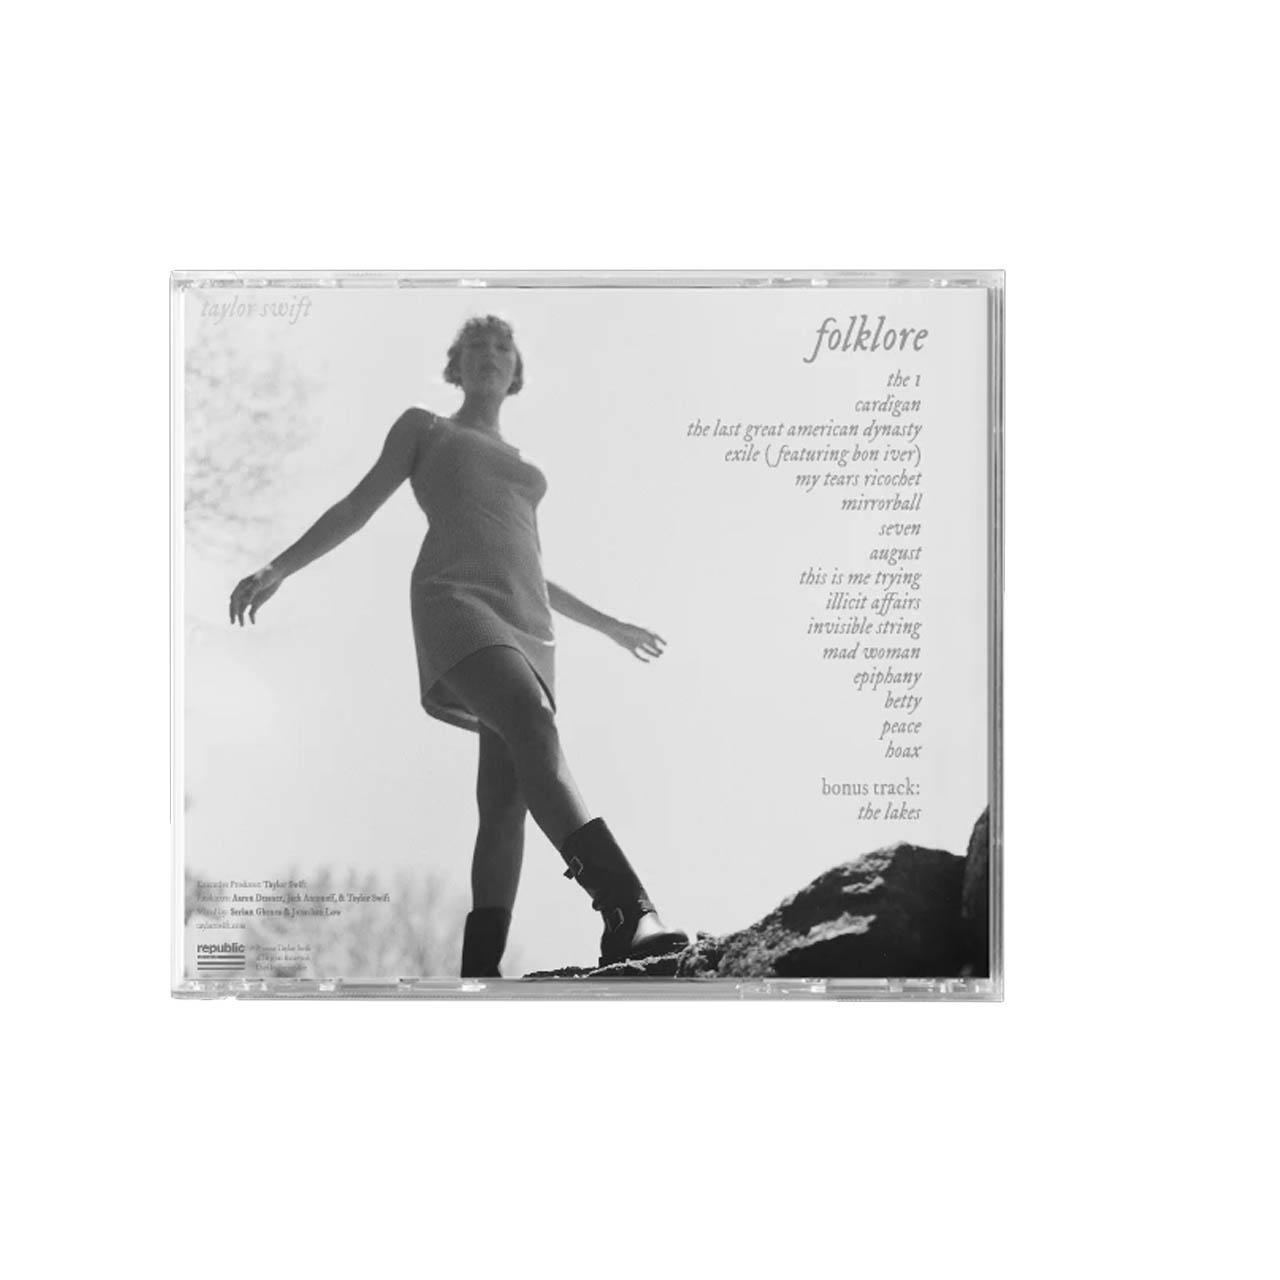 Taylor Swift Folklore Running Like Water Back CD